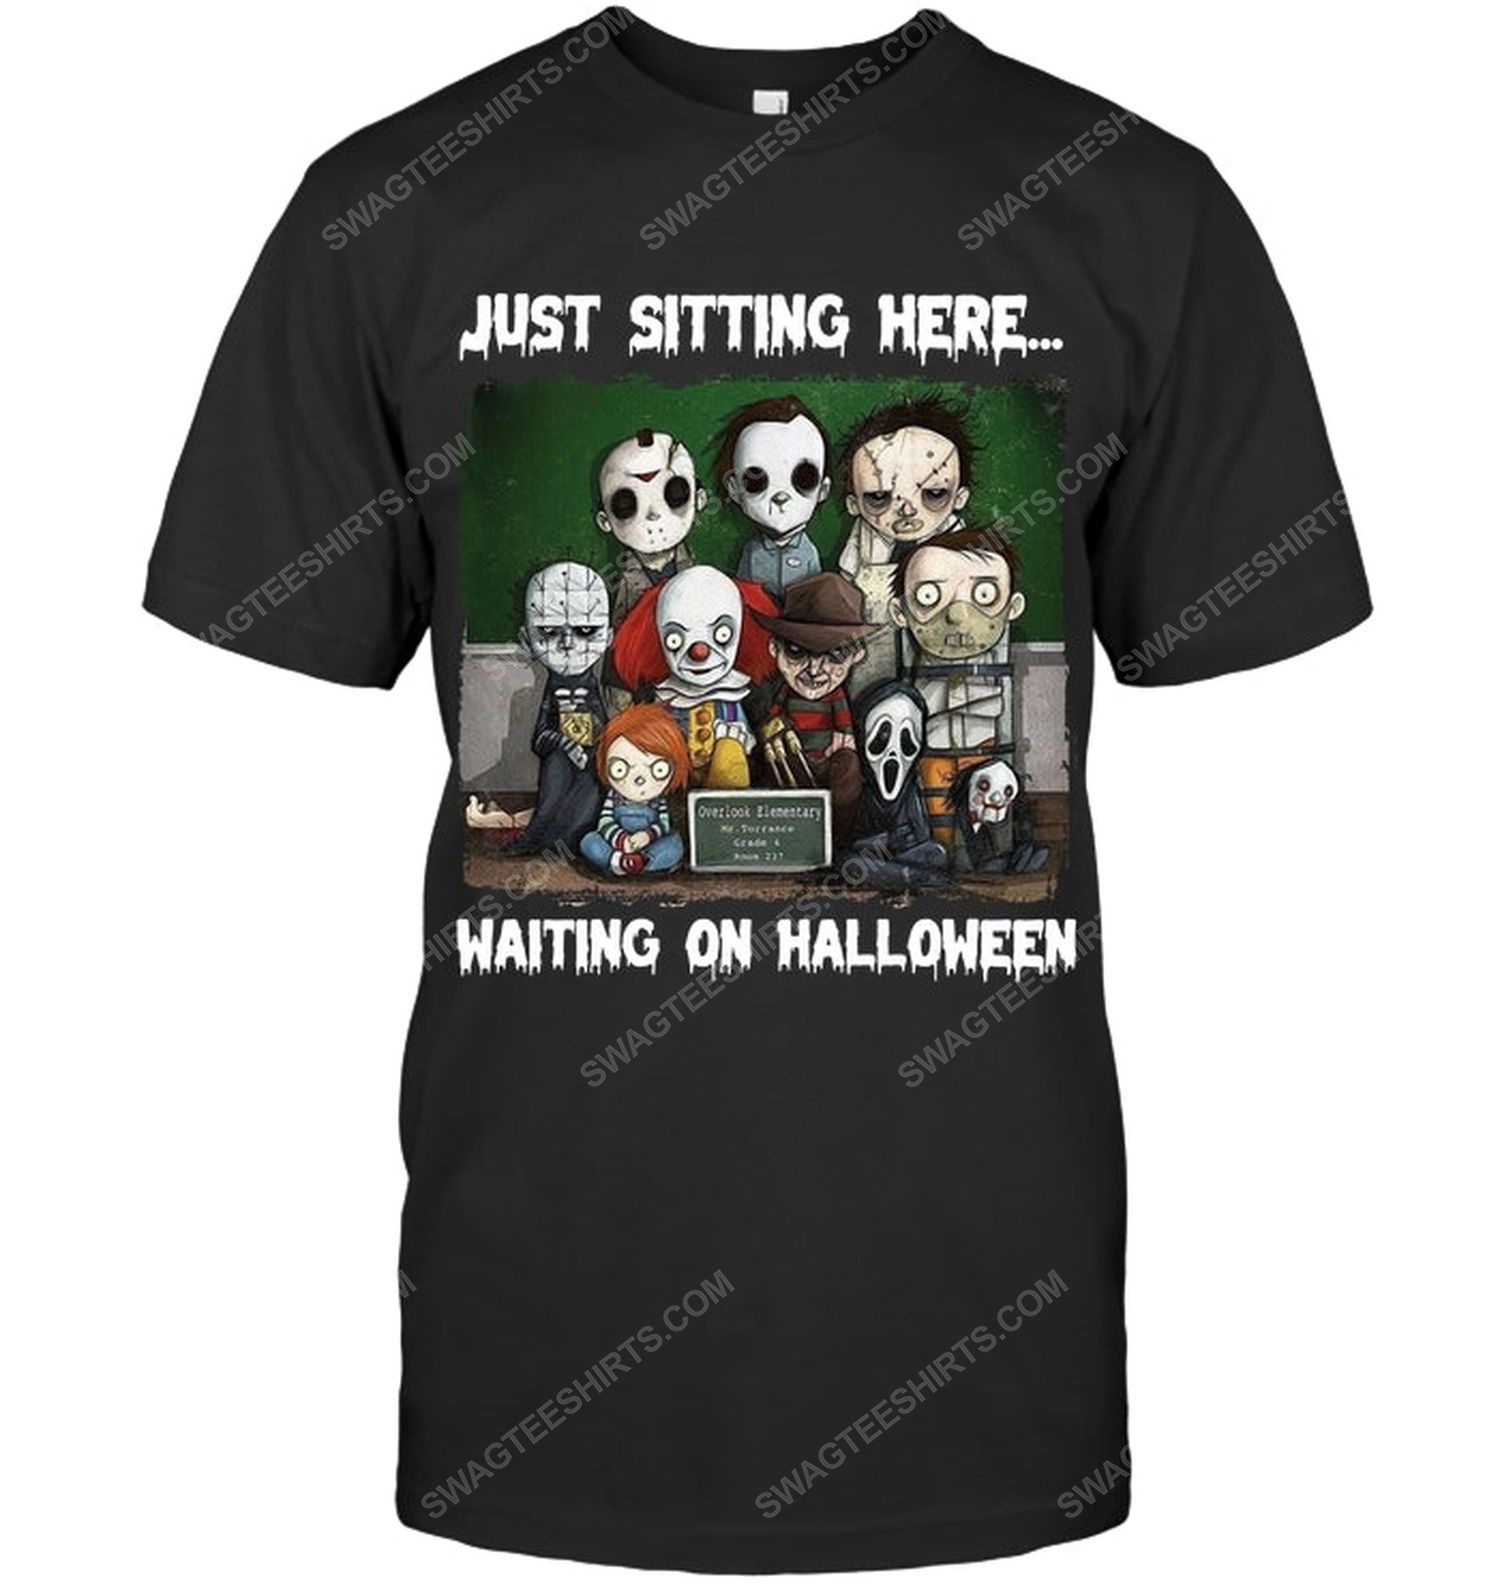 Just sitting here waiting on halloween horror characters shirt